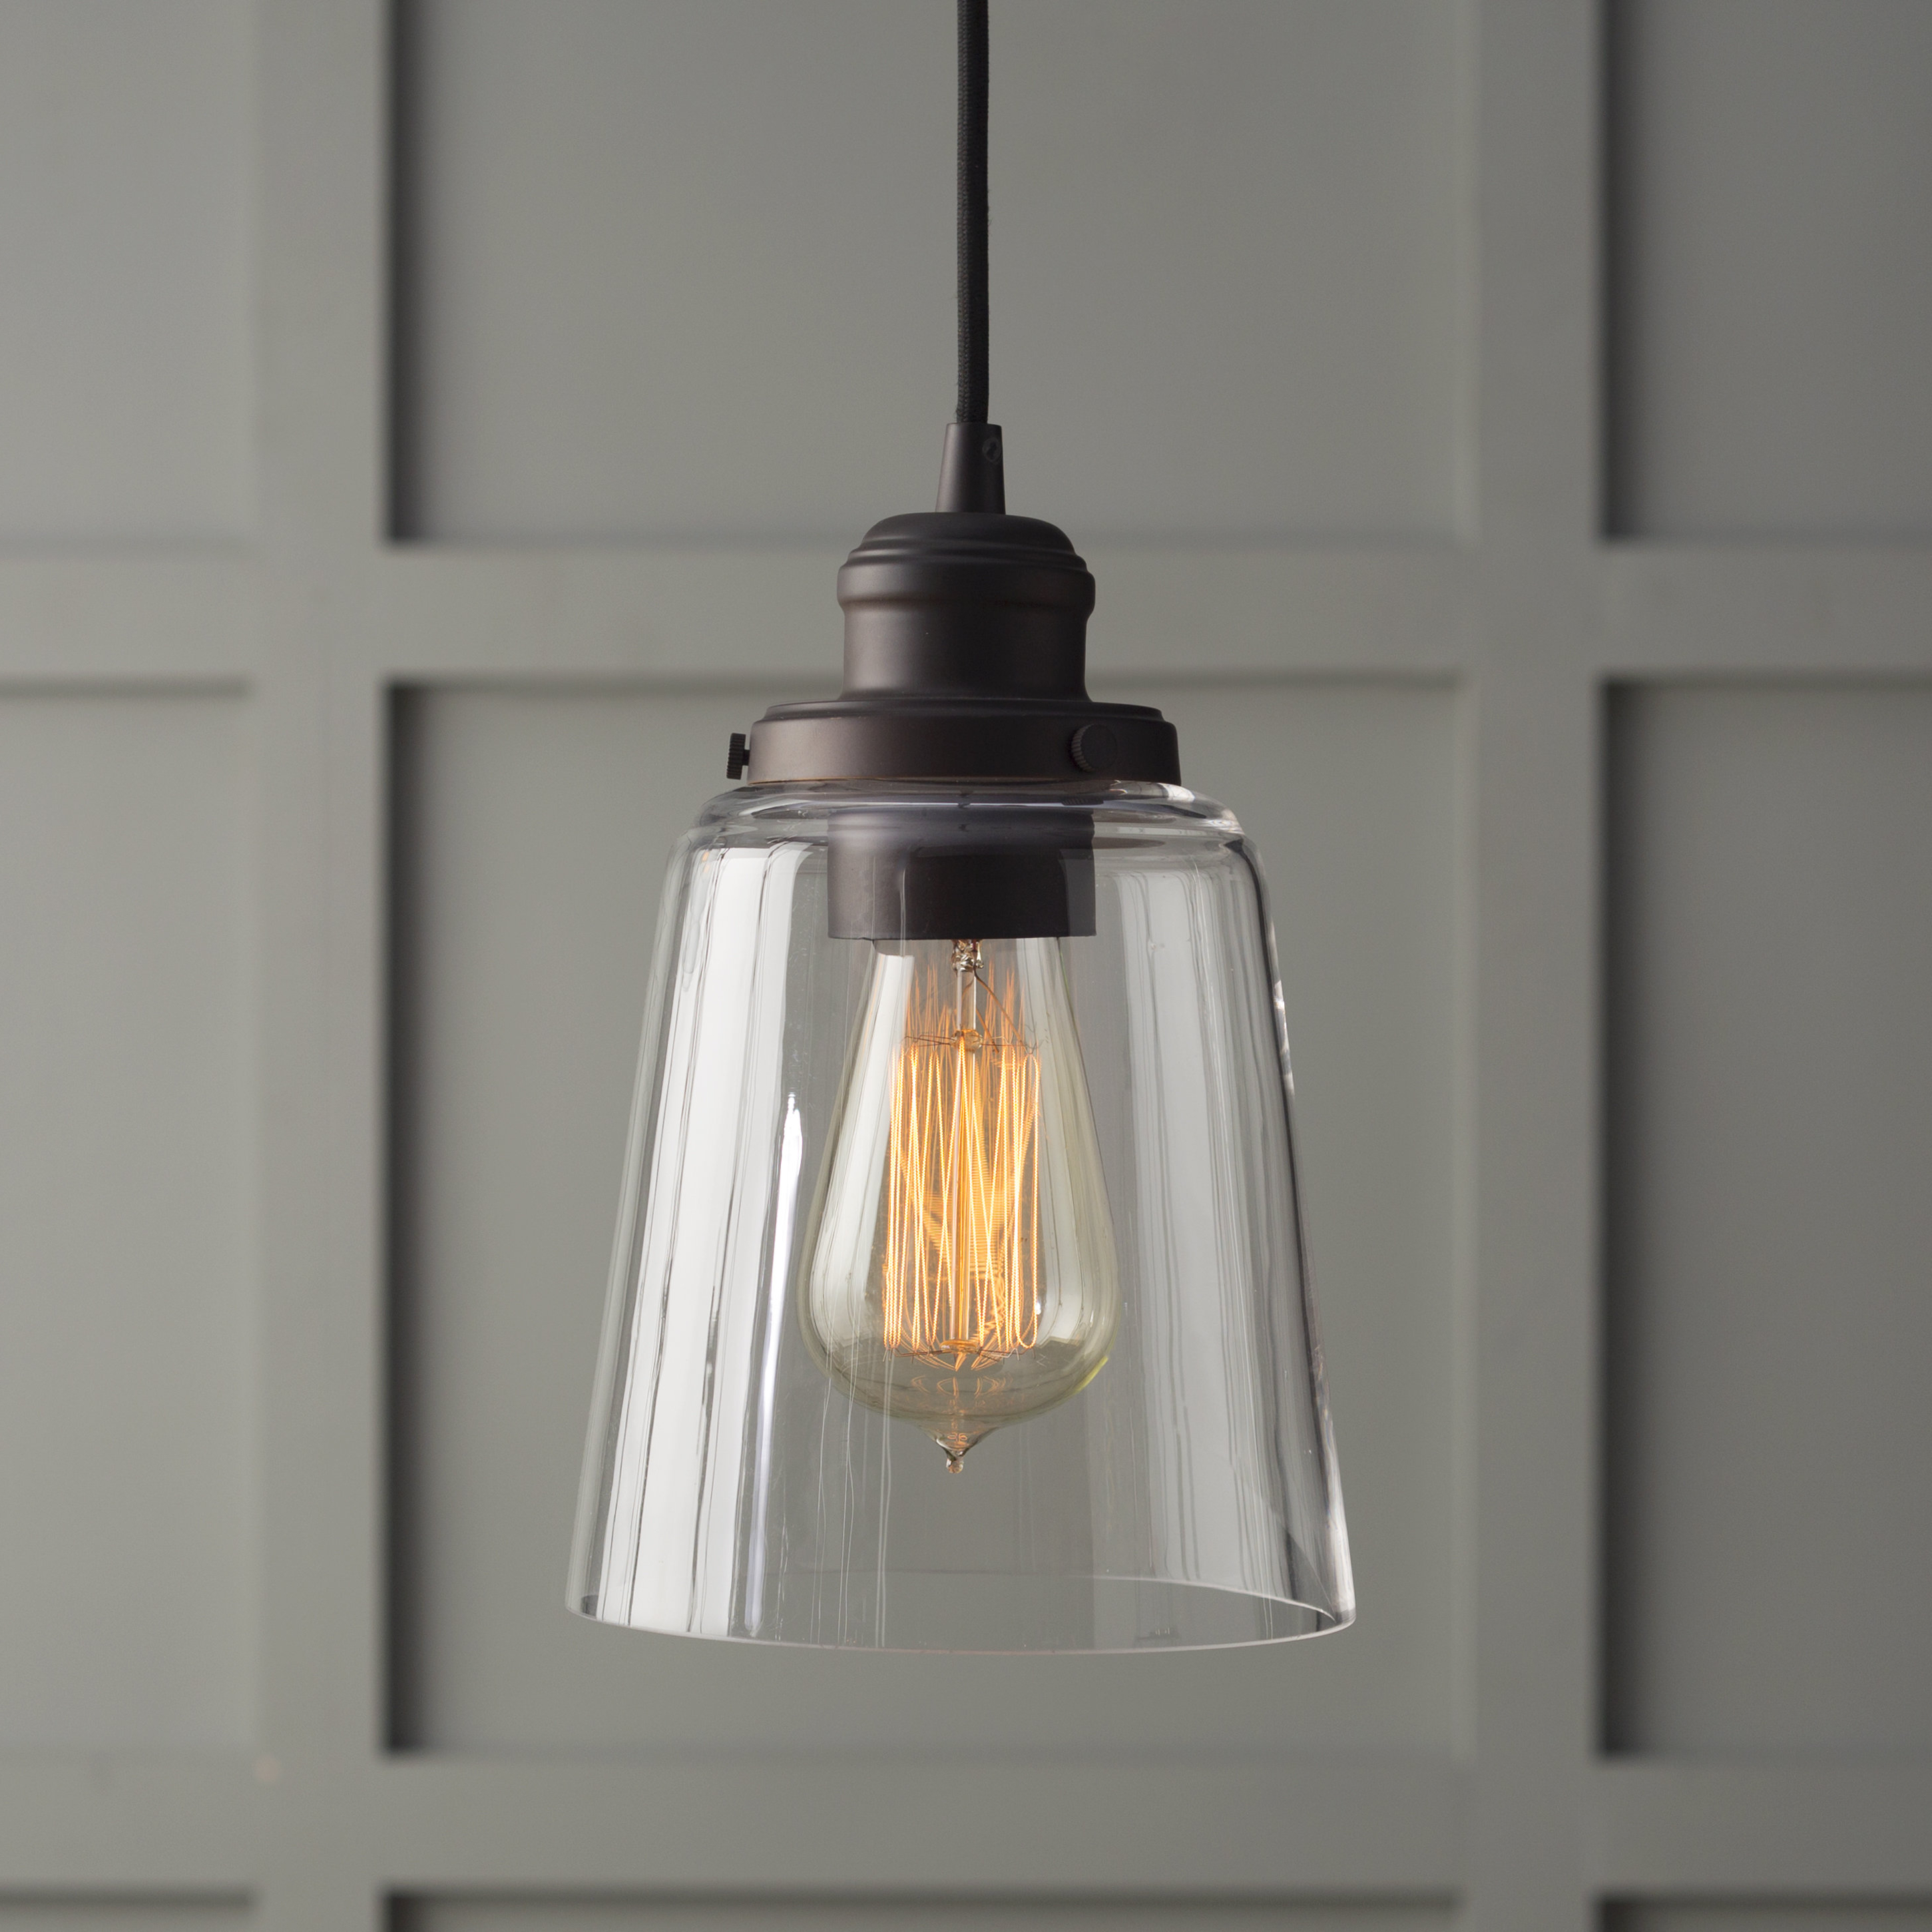 Birch Lane™ Heritage 1 Light Single Bell Pendant Throughout Most Up To Date Bryker 1 Light Single Bulb Pendants (View 5 of 20)